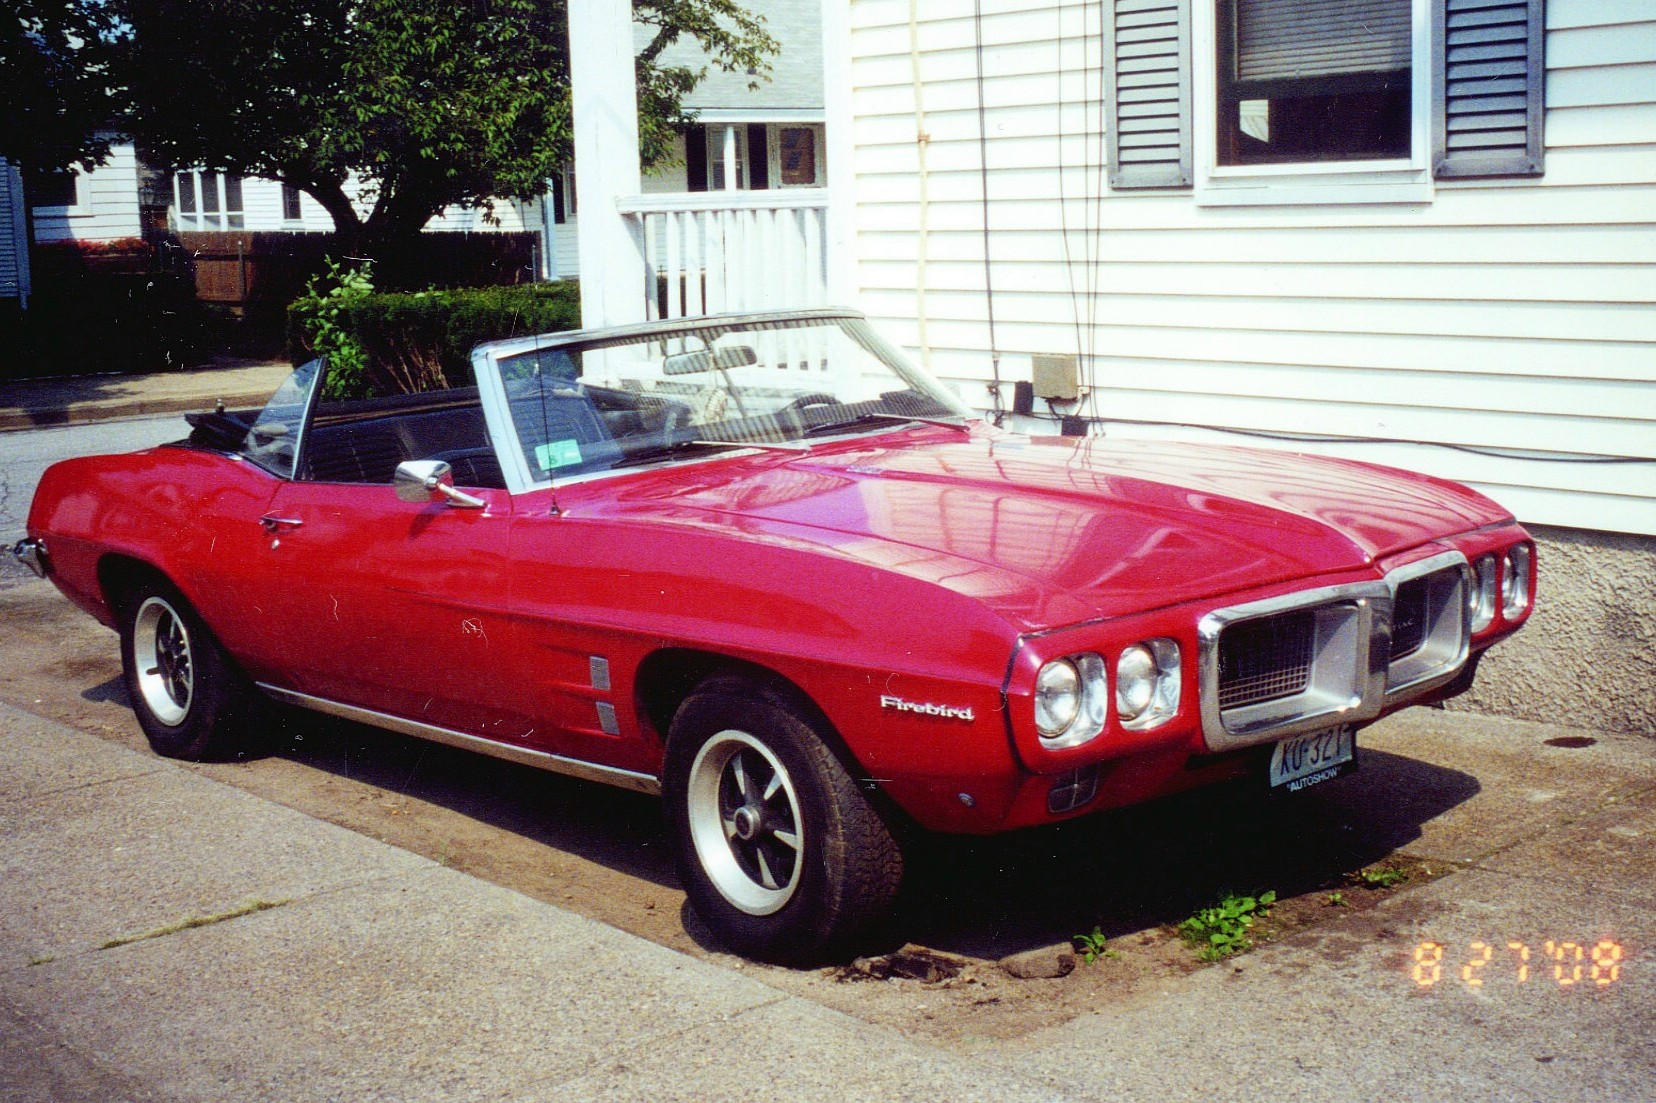 This 69 firebird was hers but now it is mine